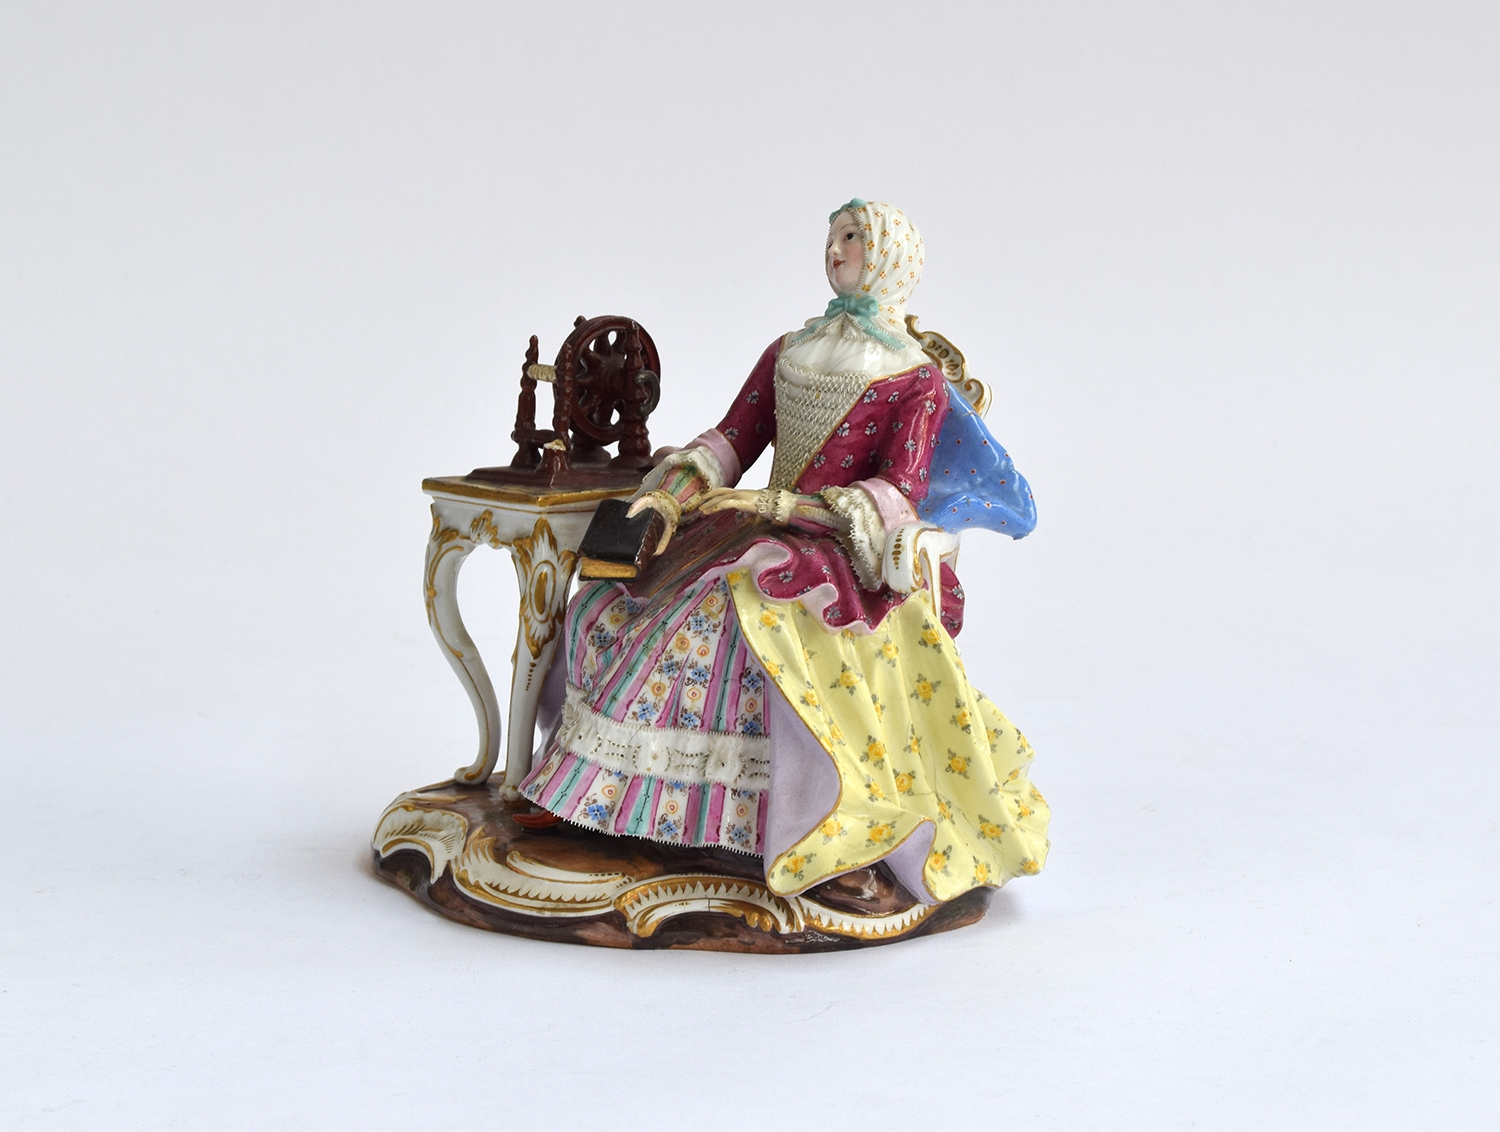 A 19th century Meissen group of a seated lady at a spinning wheel, 'The Good Housekeeper' or ' - Image 2 of 3